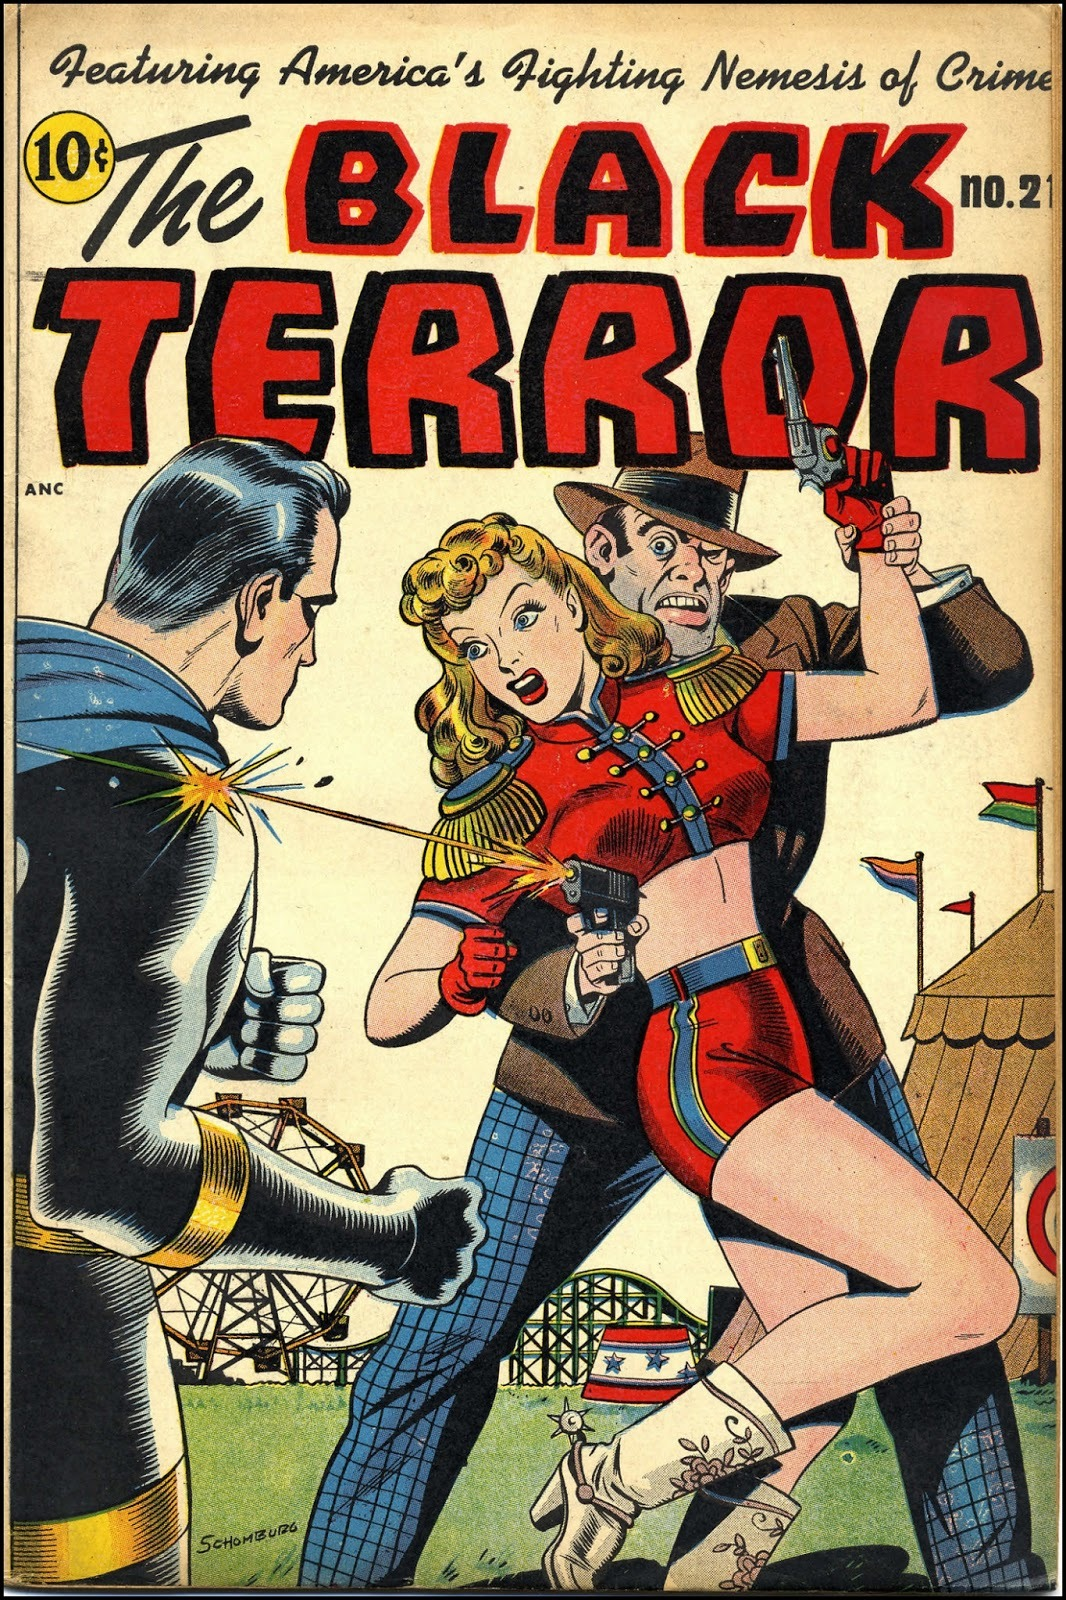 Black Terror #21, January 1948; cover art by Alex Schomburg. (via Fantasy Ink: Black Terror!)